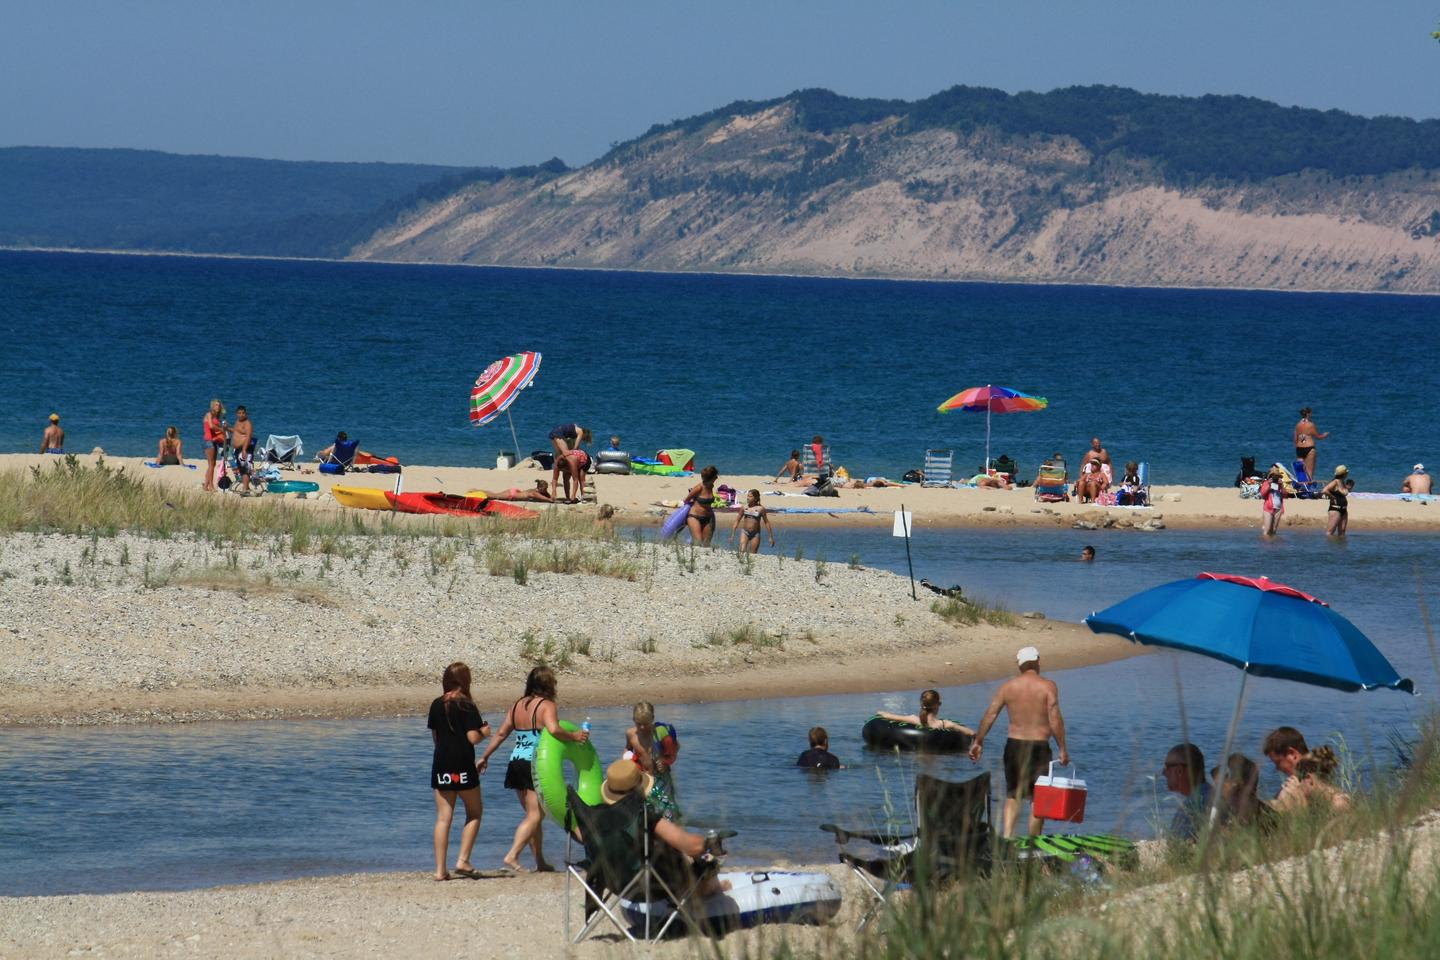 A perfect beach day at Platte River PointBright-colored umbrellas, bathing suits and floats make a festive day at the beach